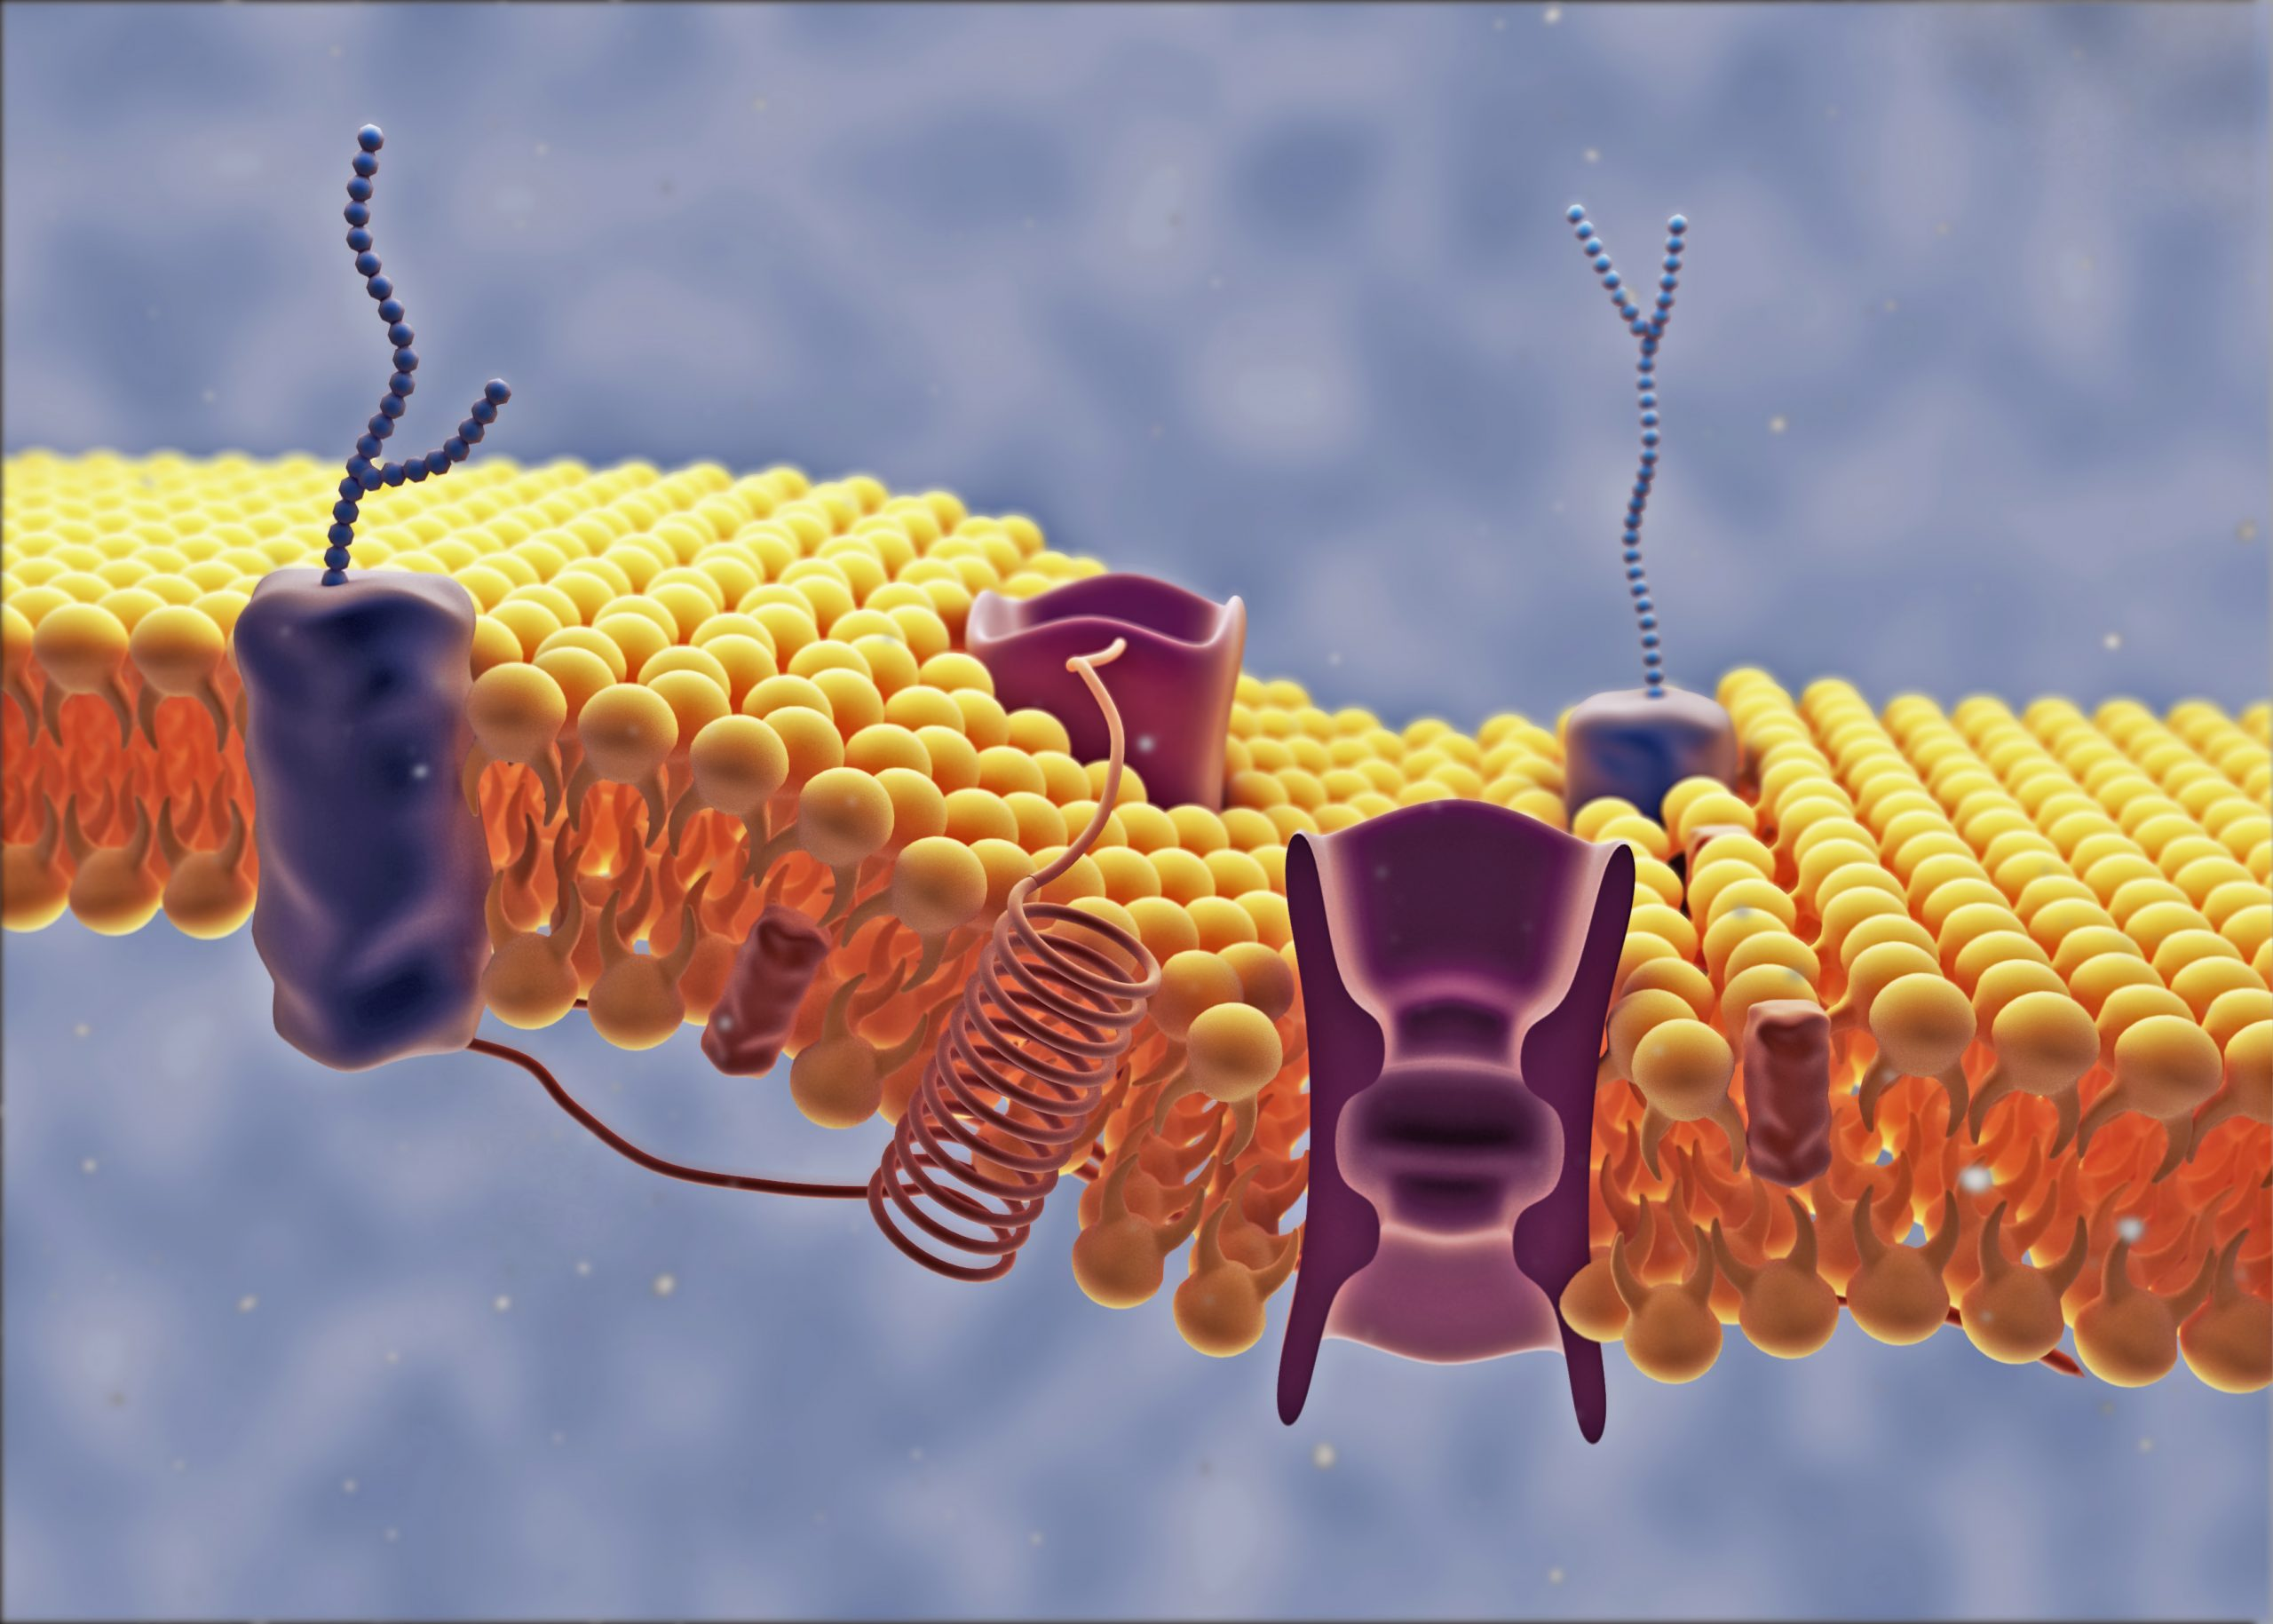 computer model of a cell membrane lipid bilayer with receptors, proteins and carbohydrates